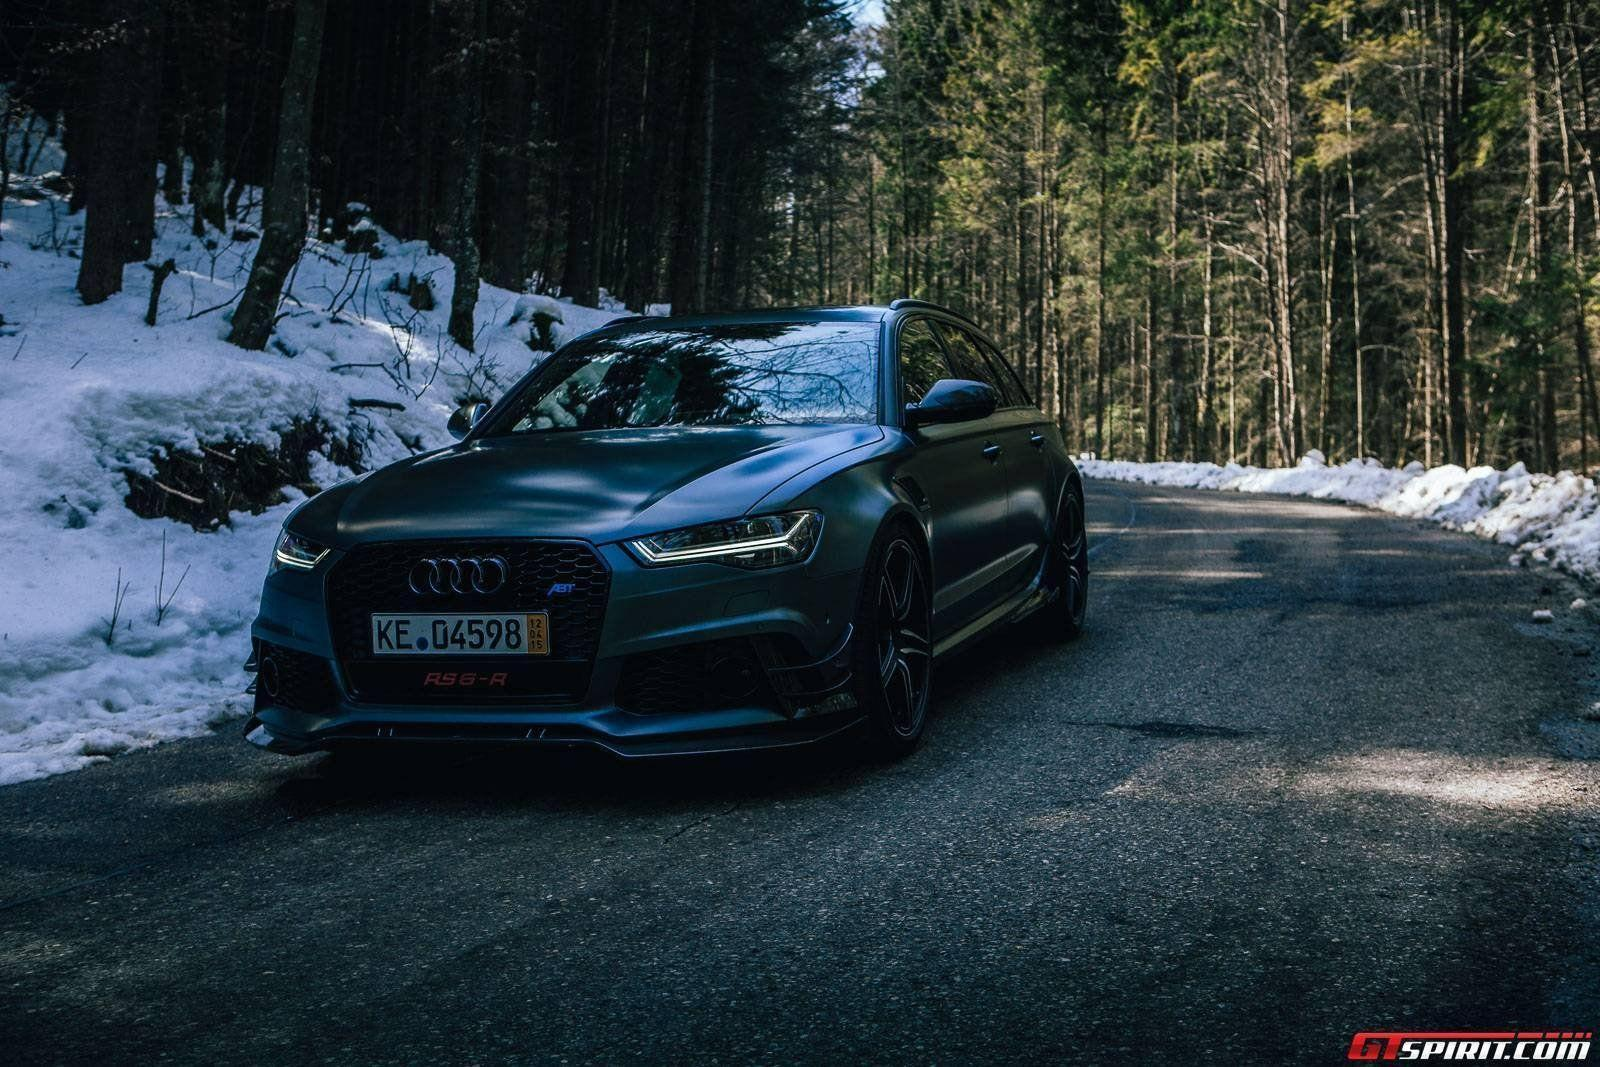 Audi Rs6 Wallpapers | Top HDQ Audi Rs6 Images, Wallpapers ...